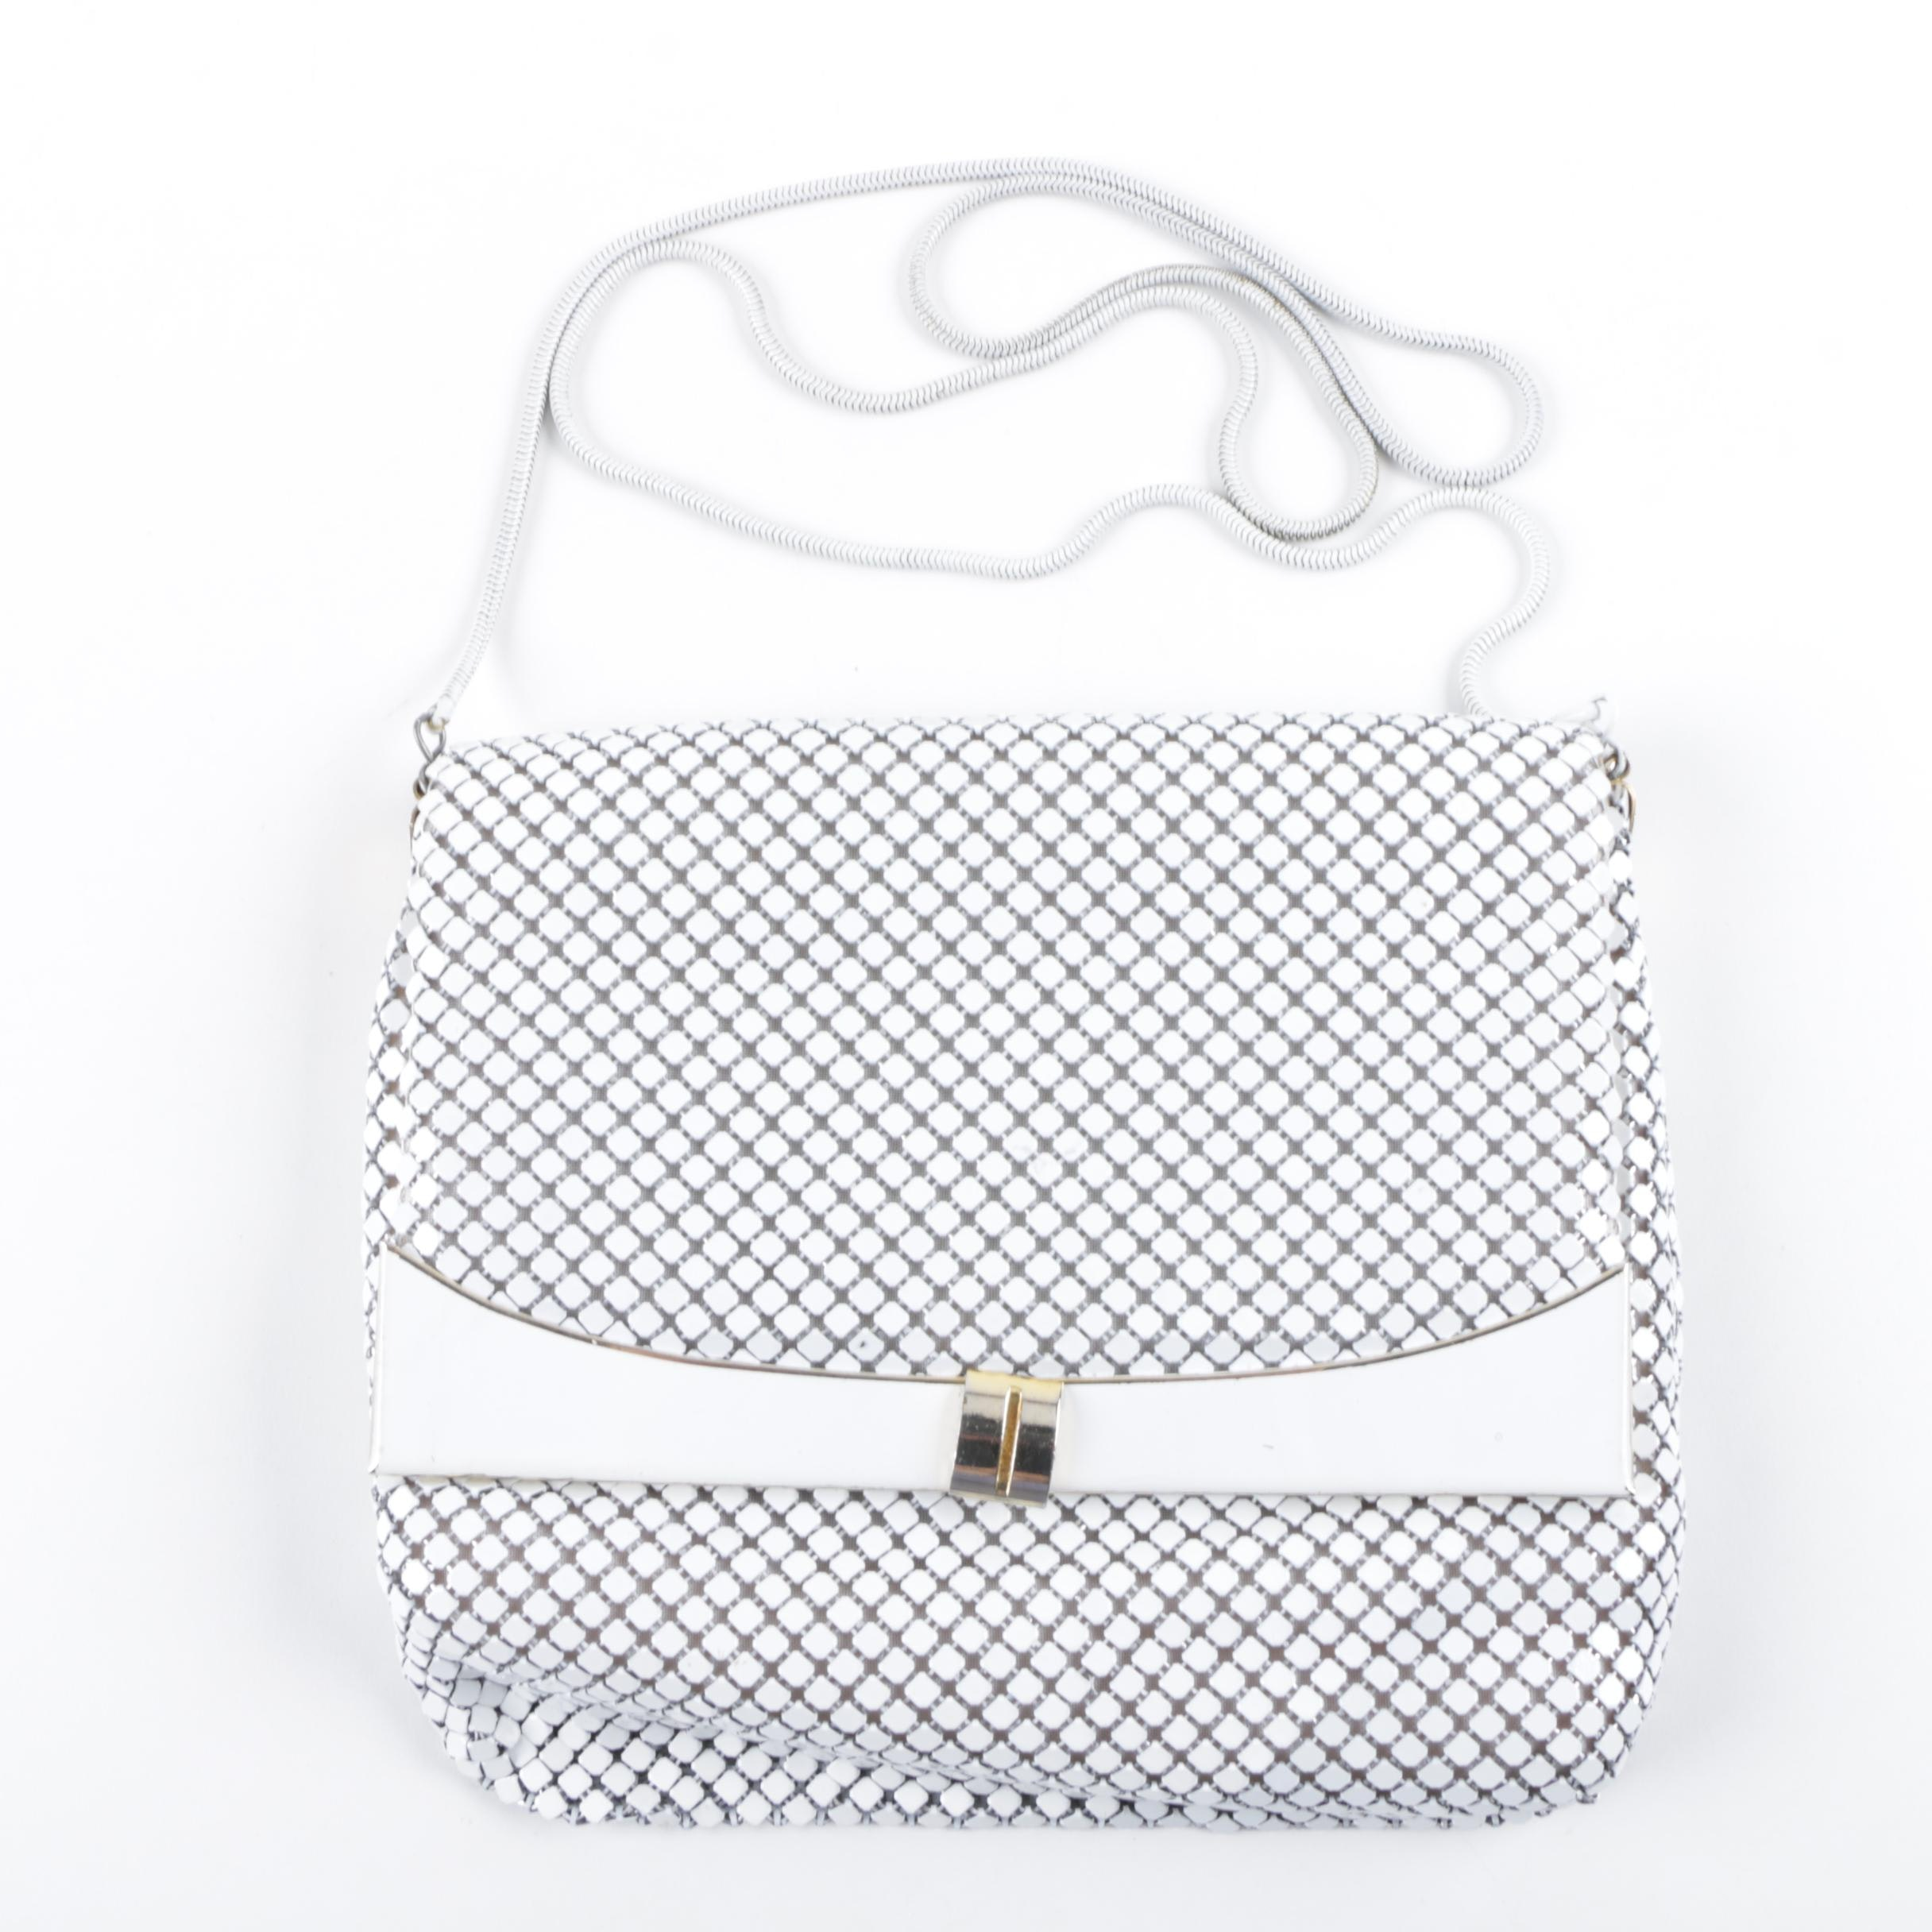 Vintage White Enameled Metal Mesh Evening Bag